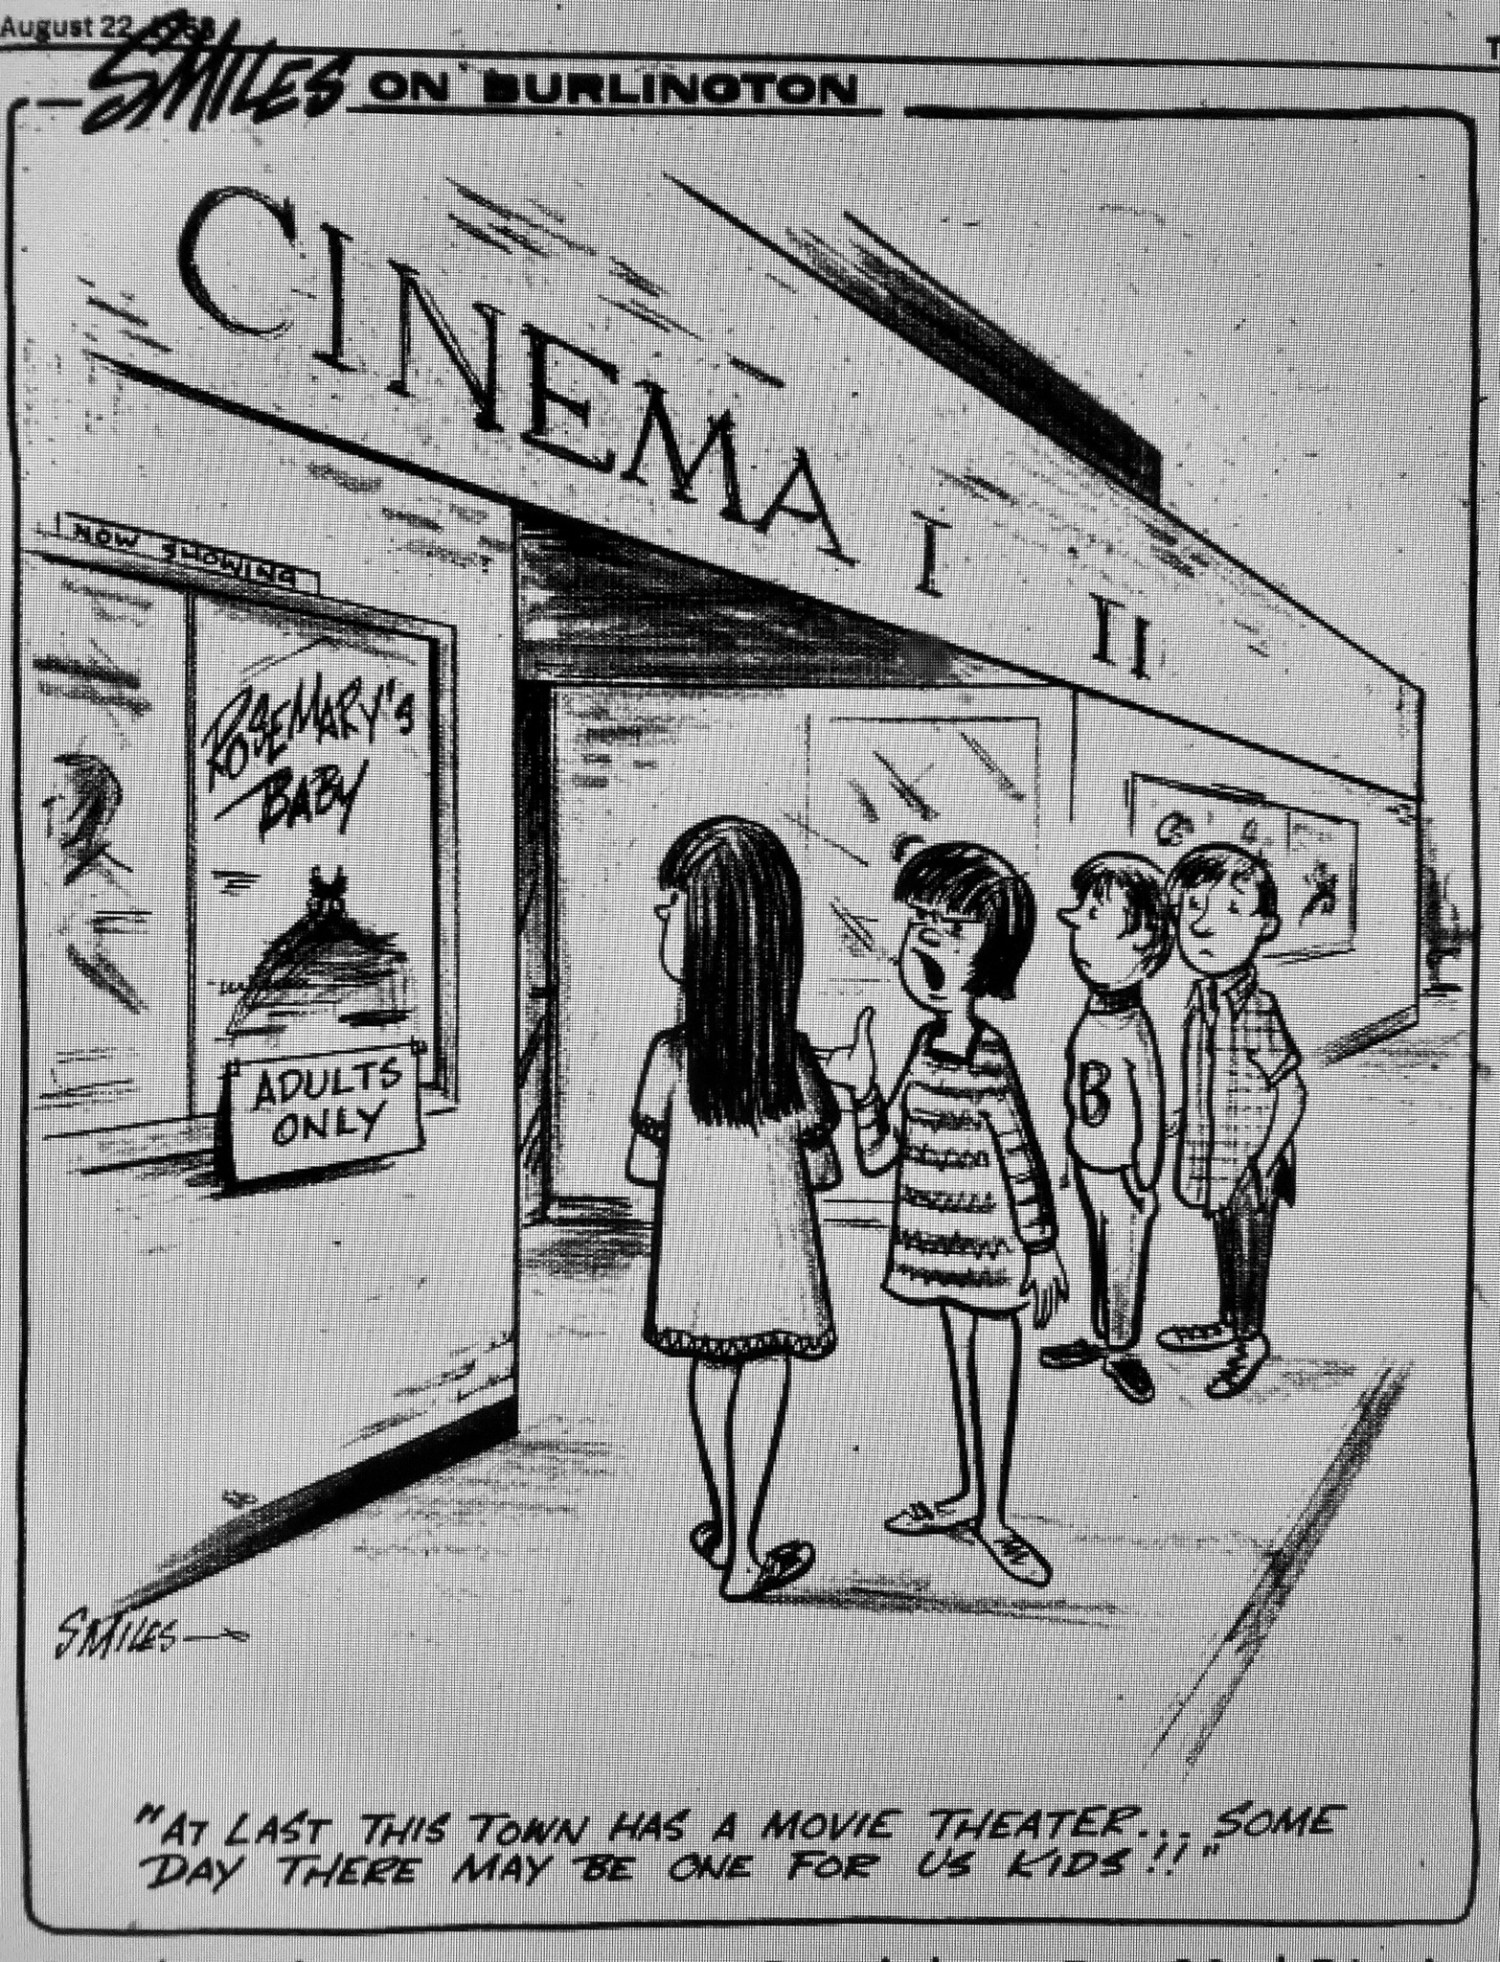 Burlington Mall Cinema I and II cartoon